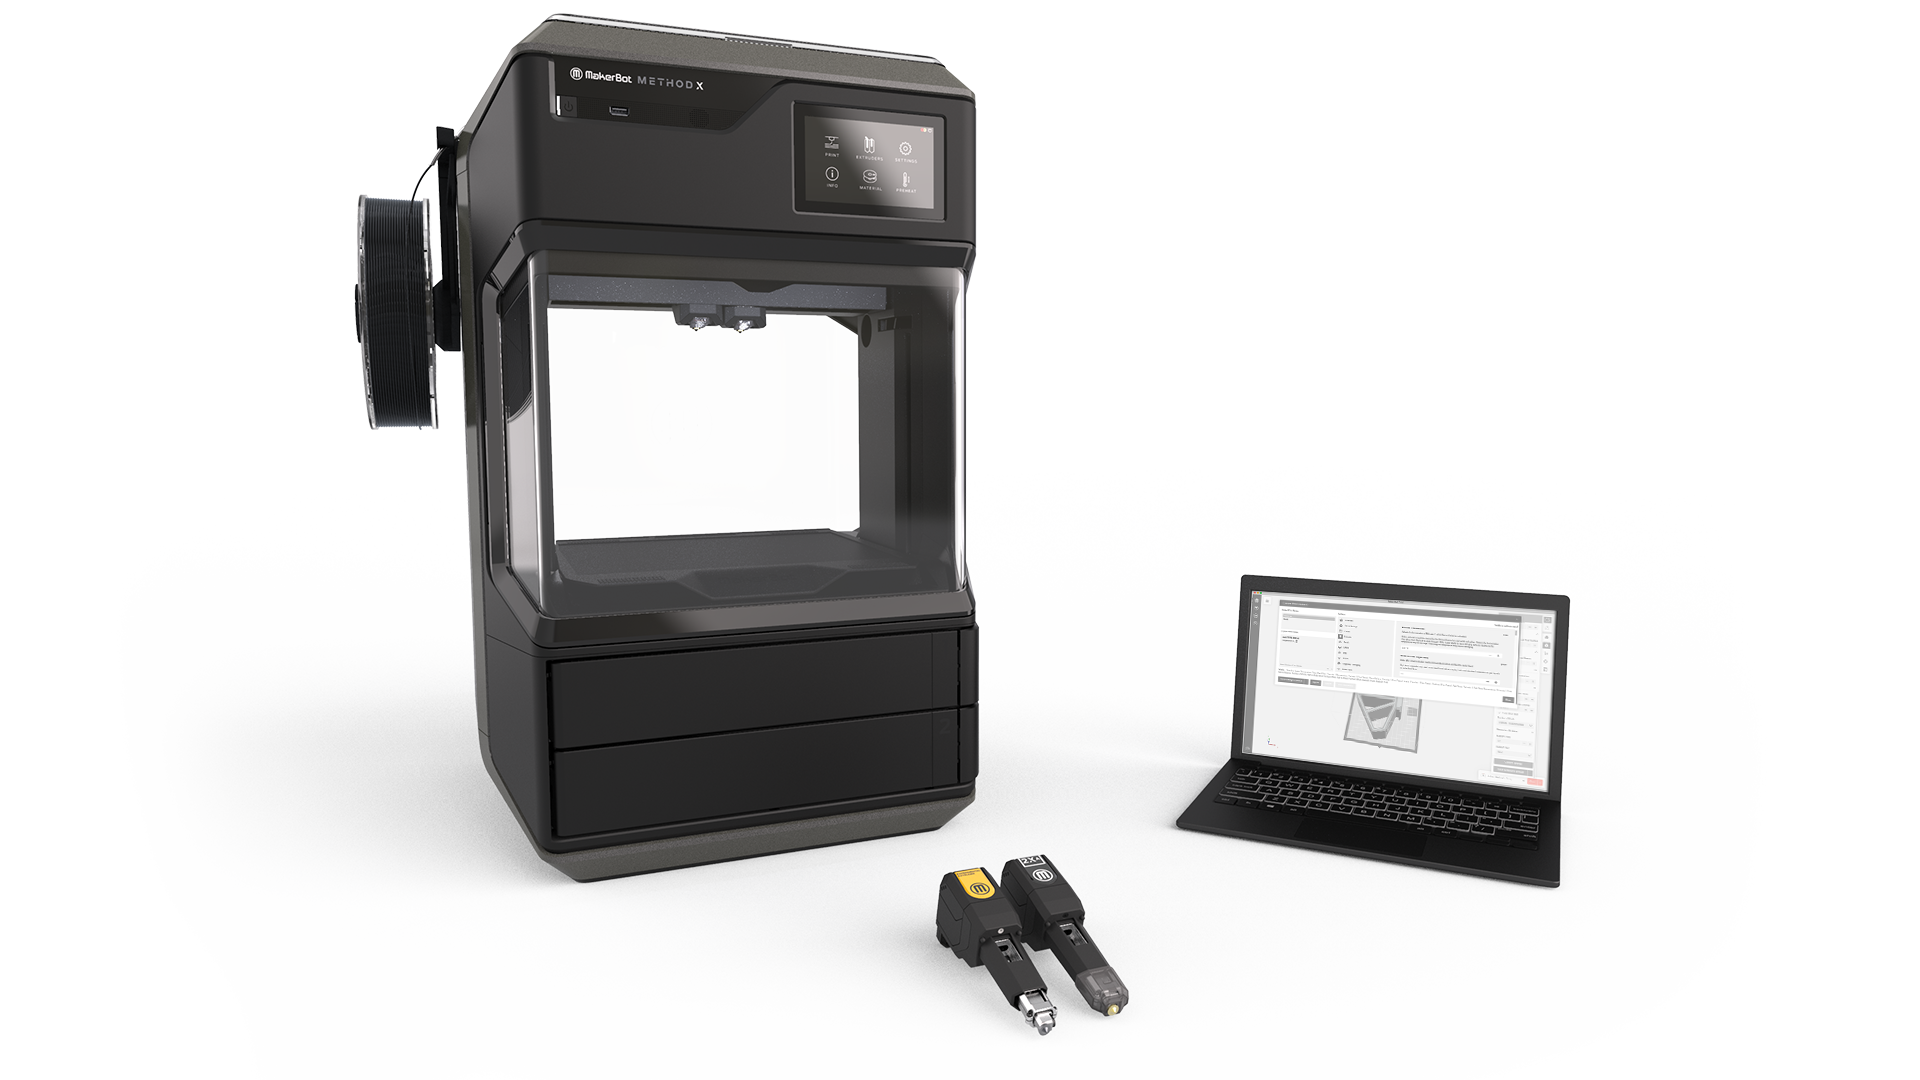 infoTRON-Makerbot-3D-Printer